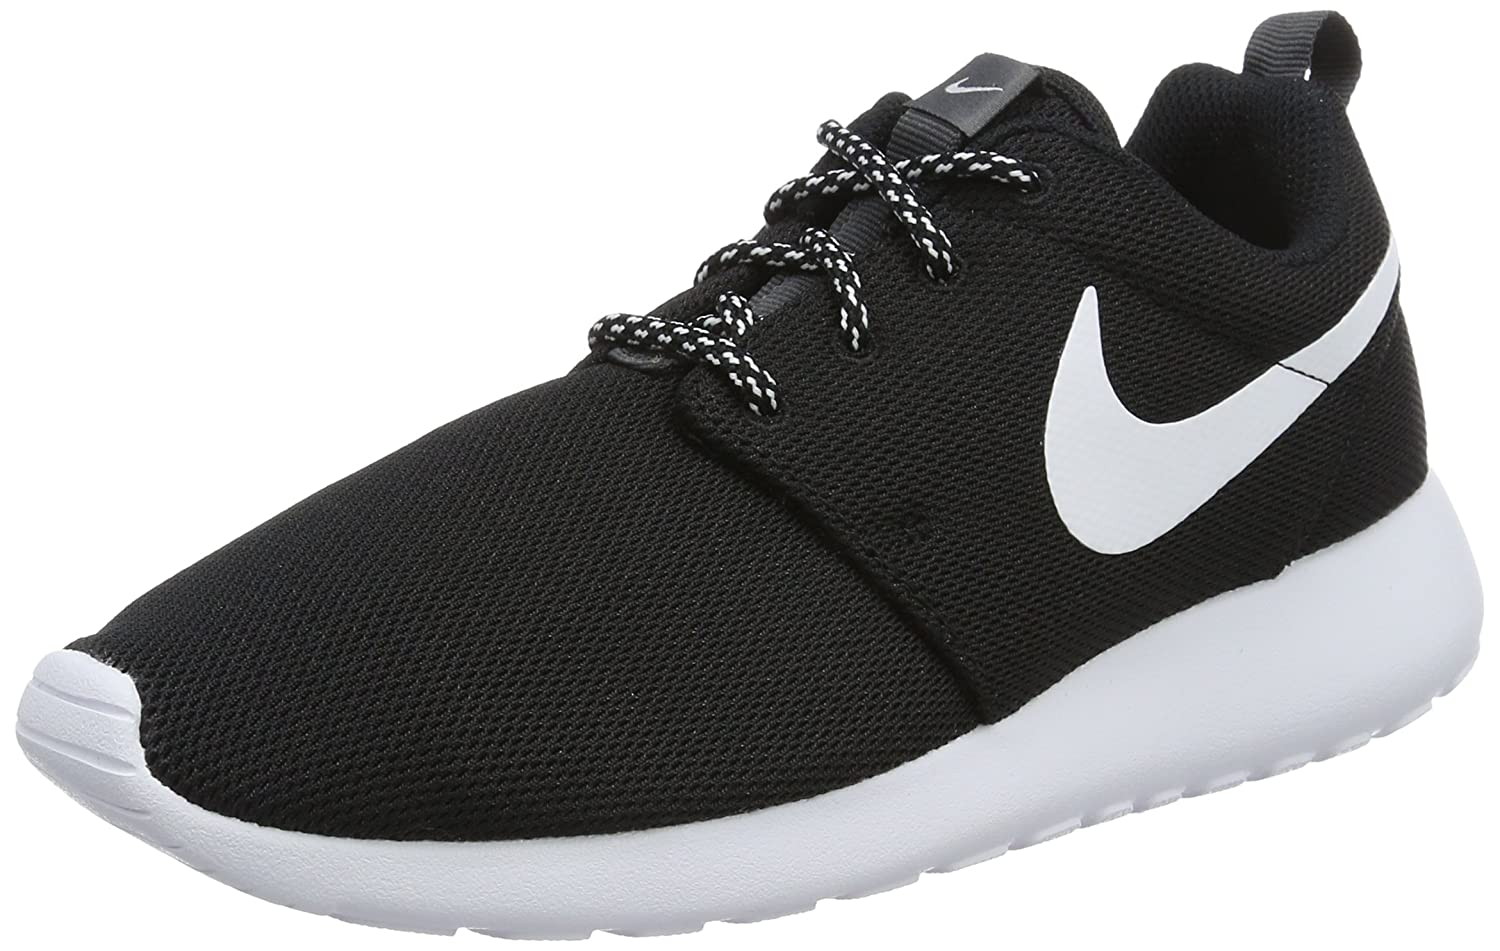 2daa6fc1c314 Nike Women s Roshe One Trainers